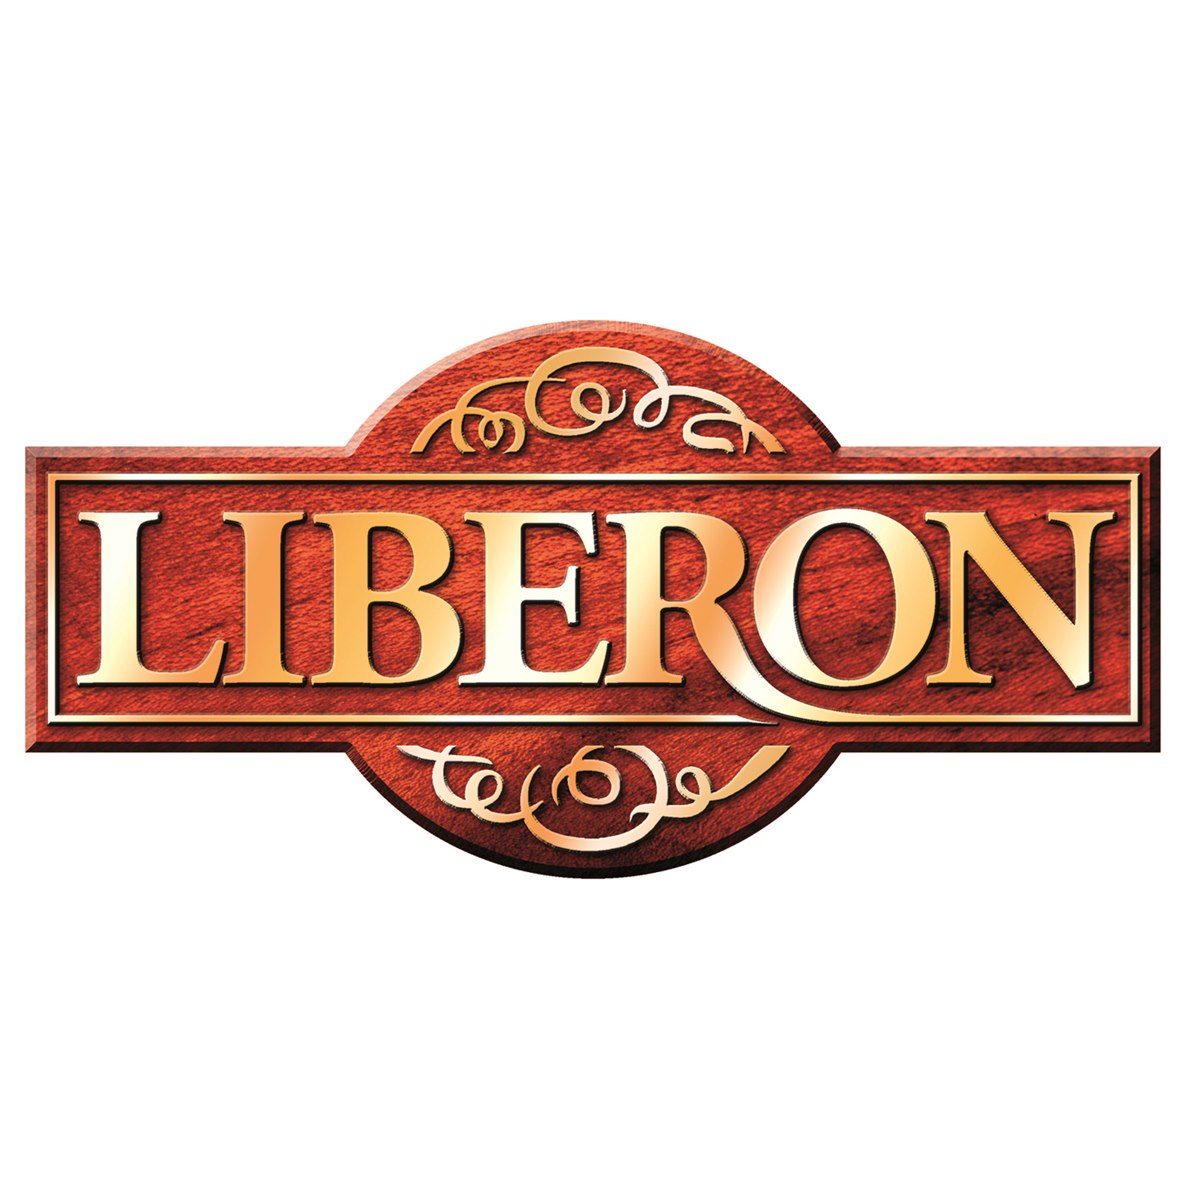 Where to buy Liberon Polishes